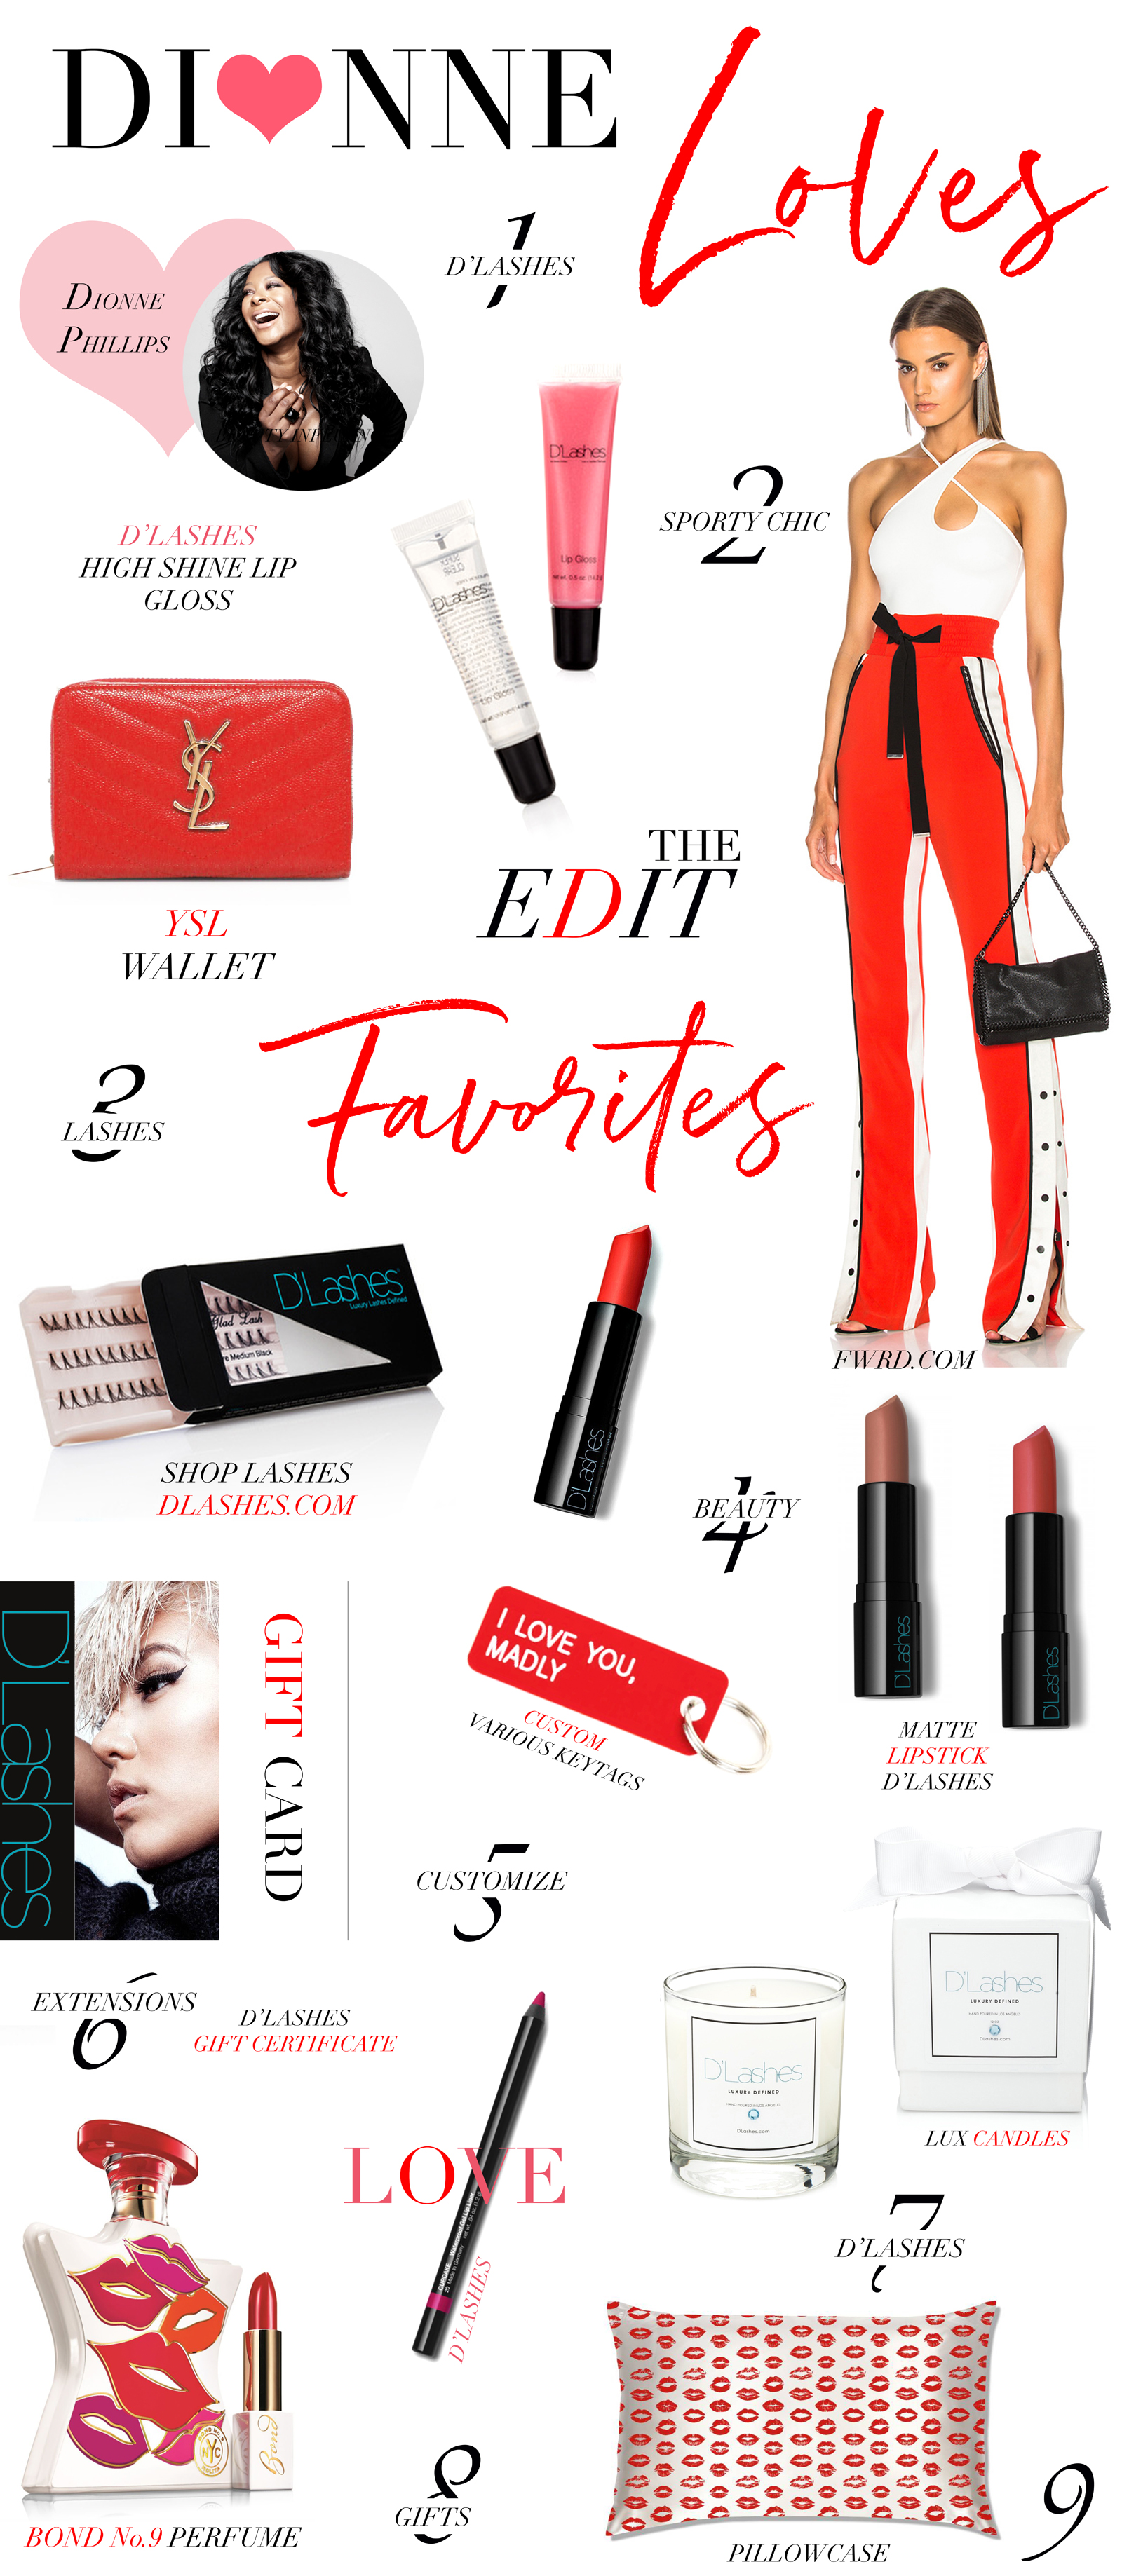 D'Lashes Valentine's Day Beauty Blogger Blog